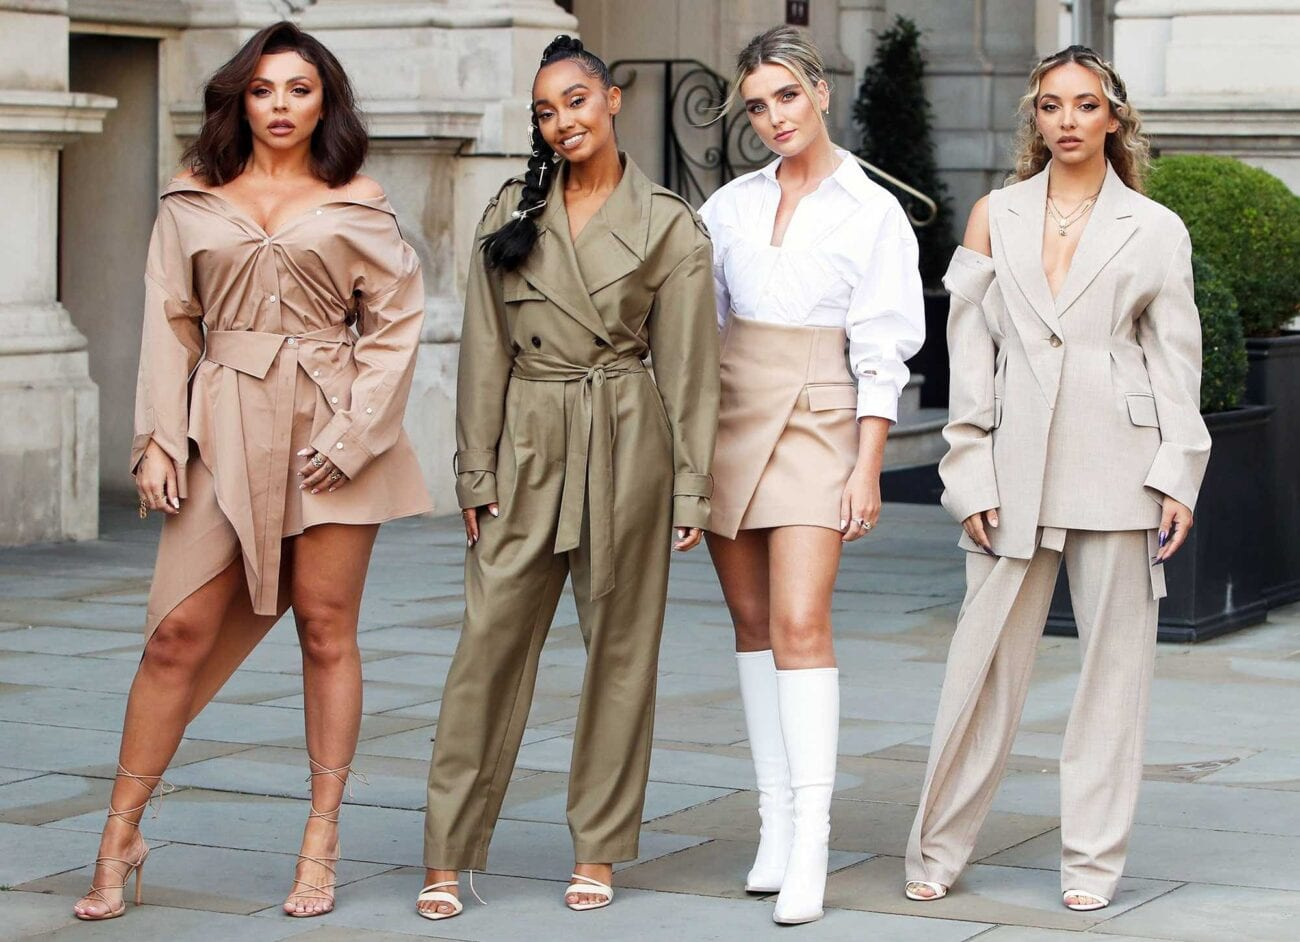 It was announced that one of the Little Mix members Jesy Nelson has exited after nine years. Here's everything that happened.